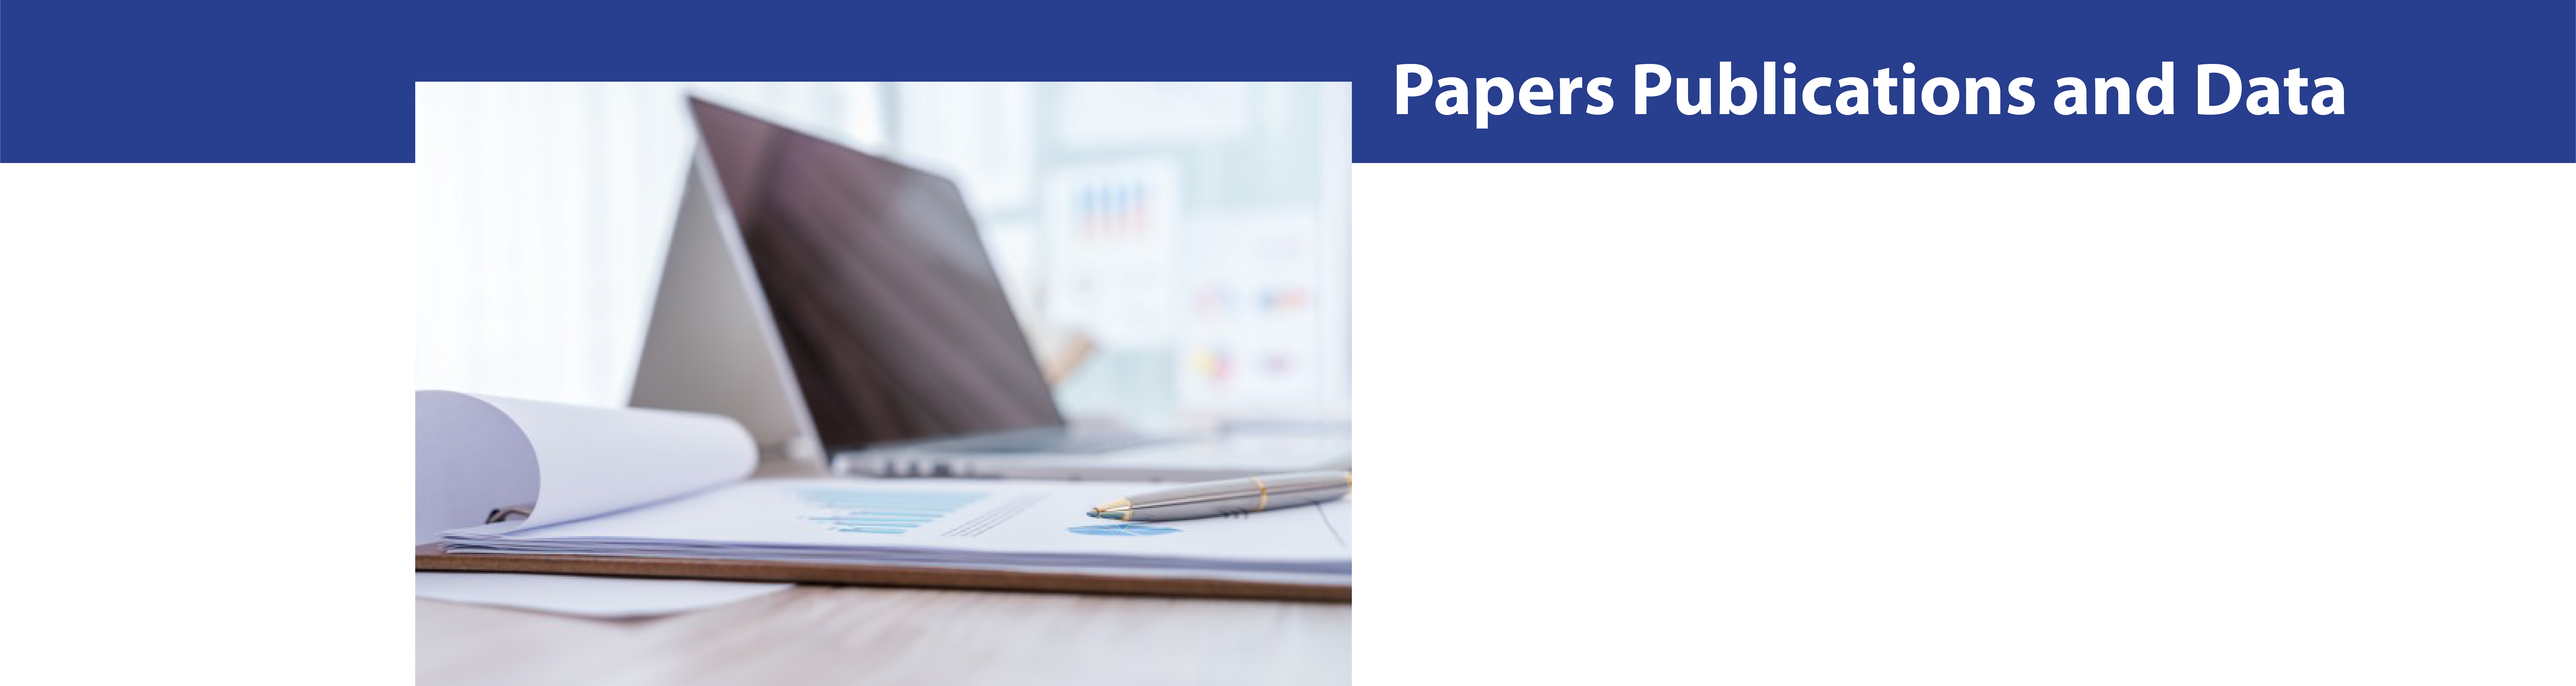 Papers, Publications, and Data Header